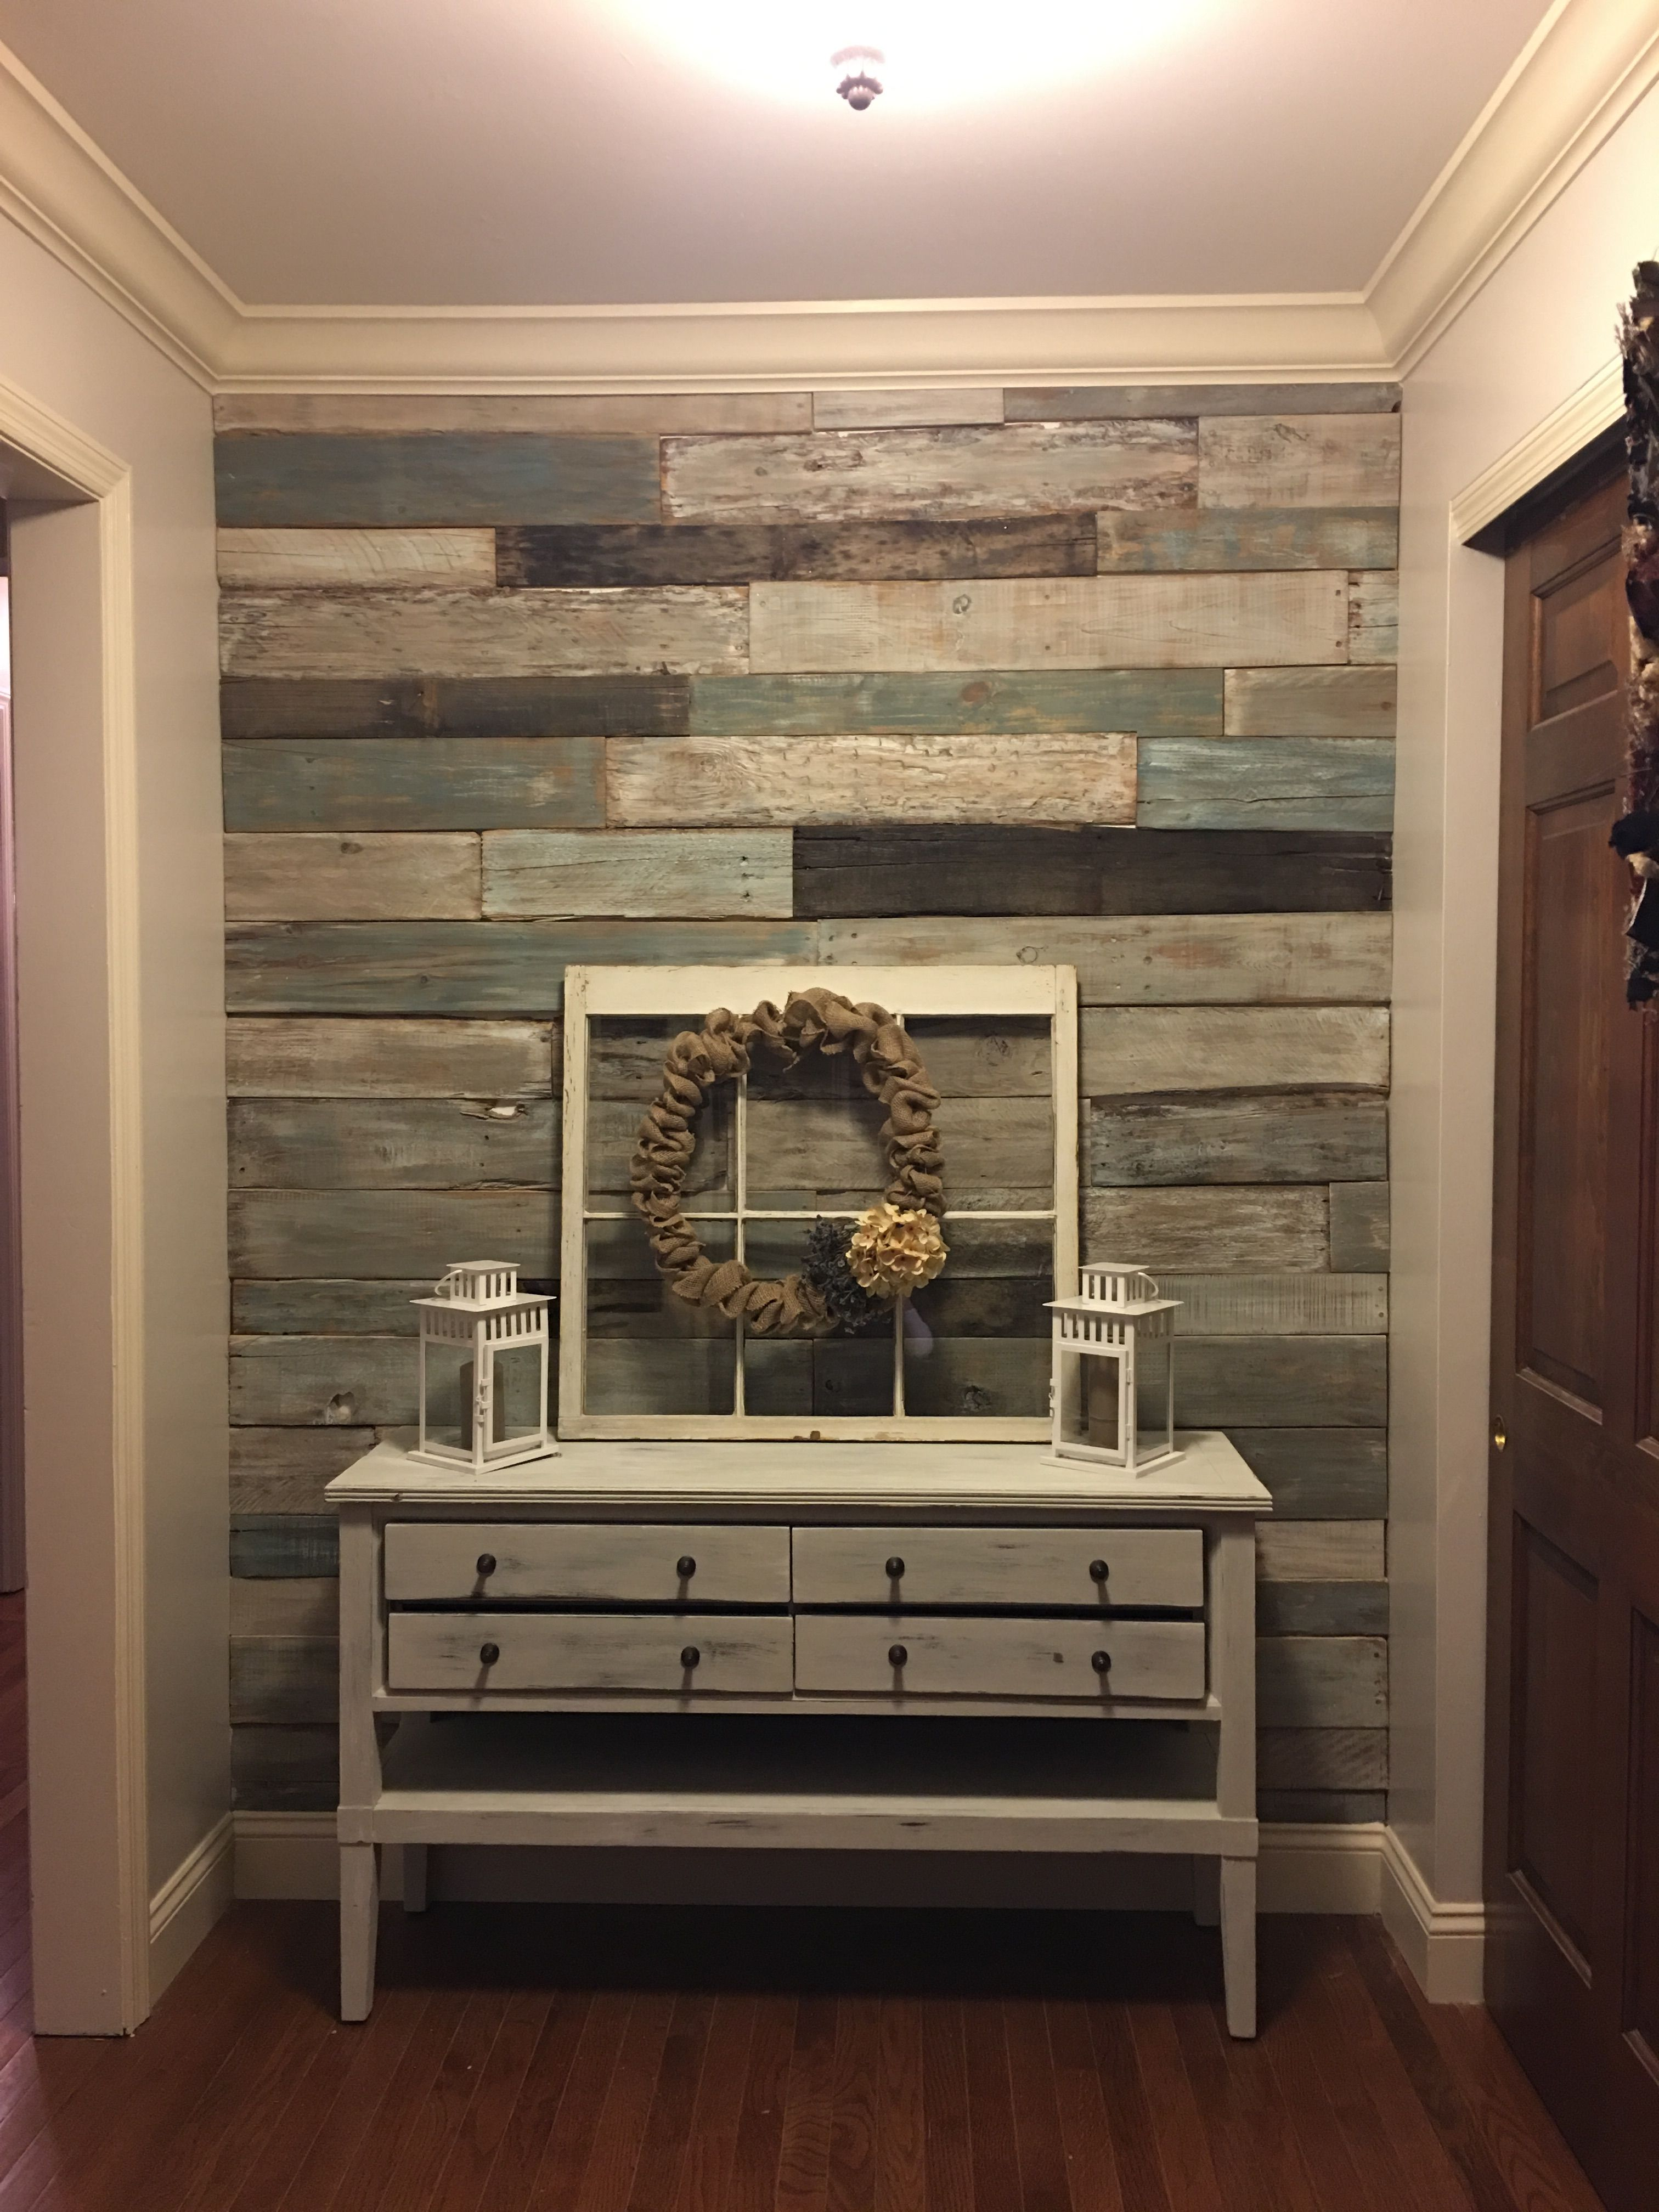 Pin By Jennifer Eiben On For The Home Wood Pallet Wall Wood Pallet Wall Art Unique Home Decor